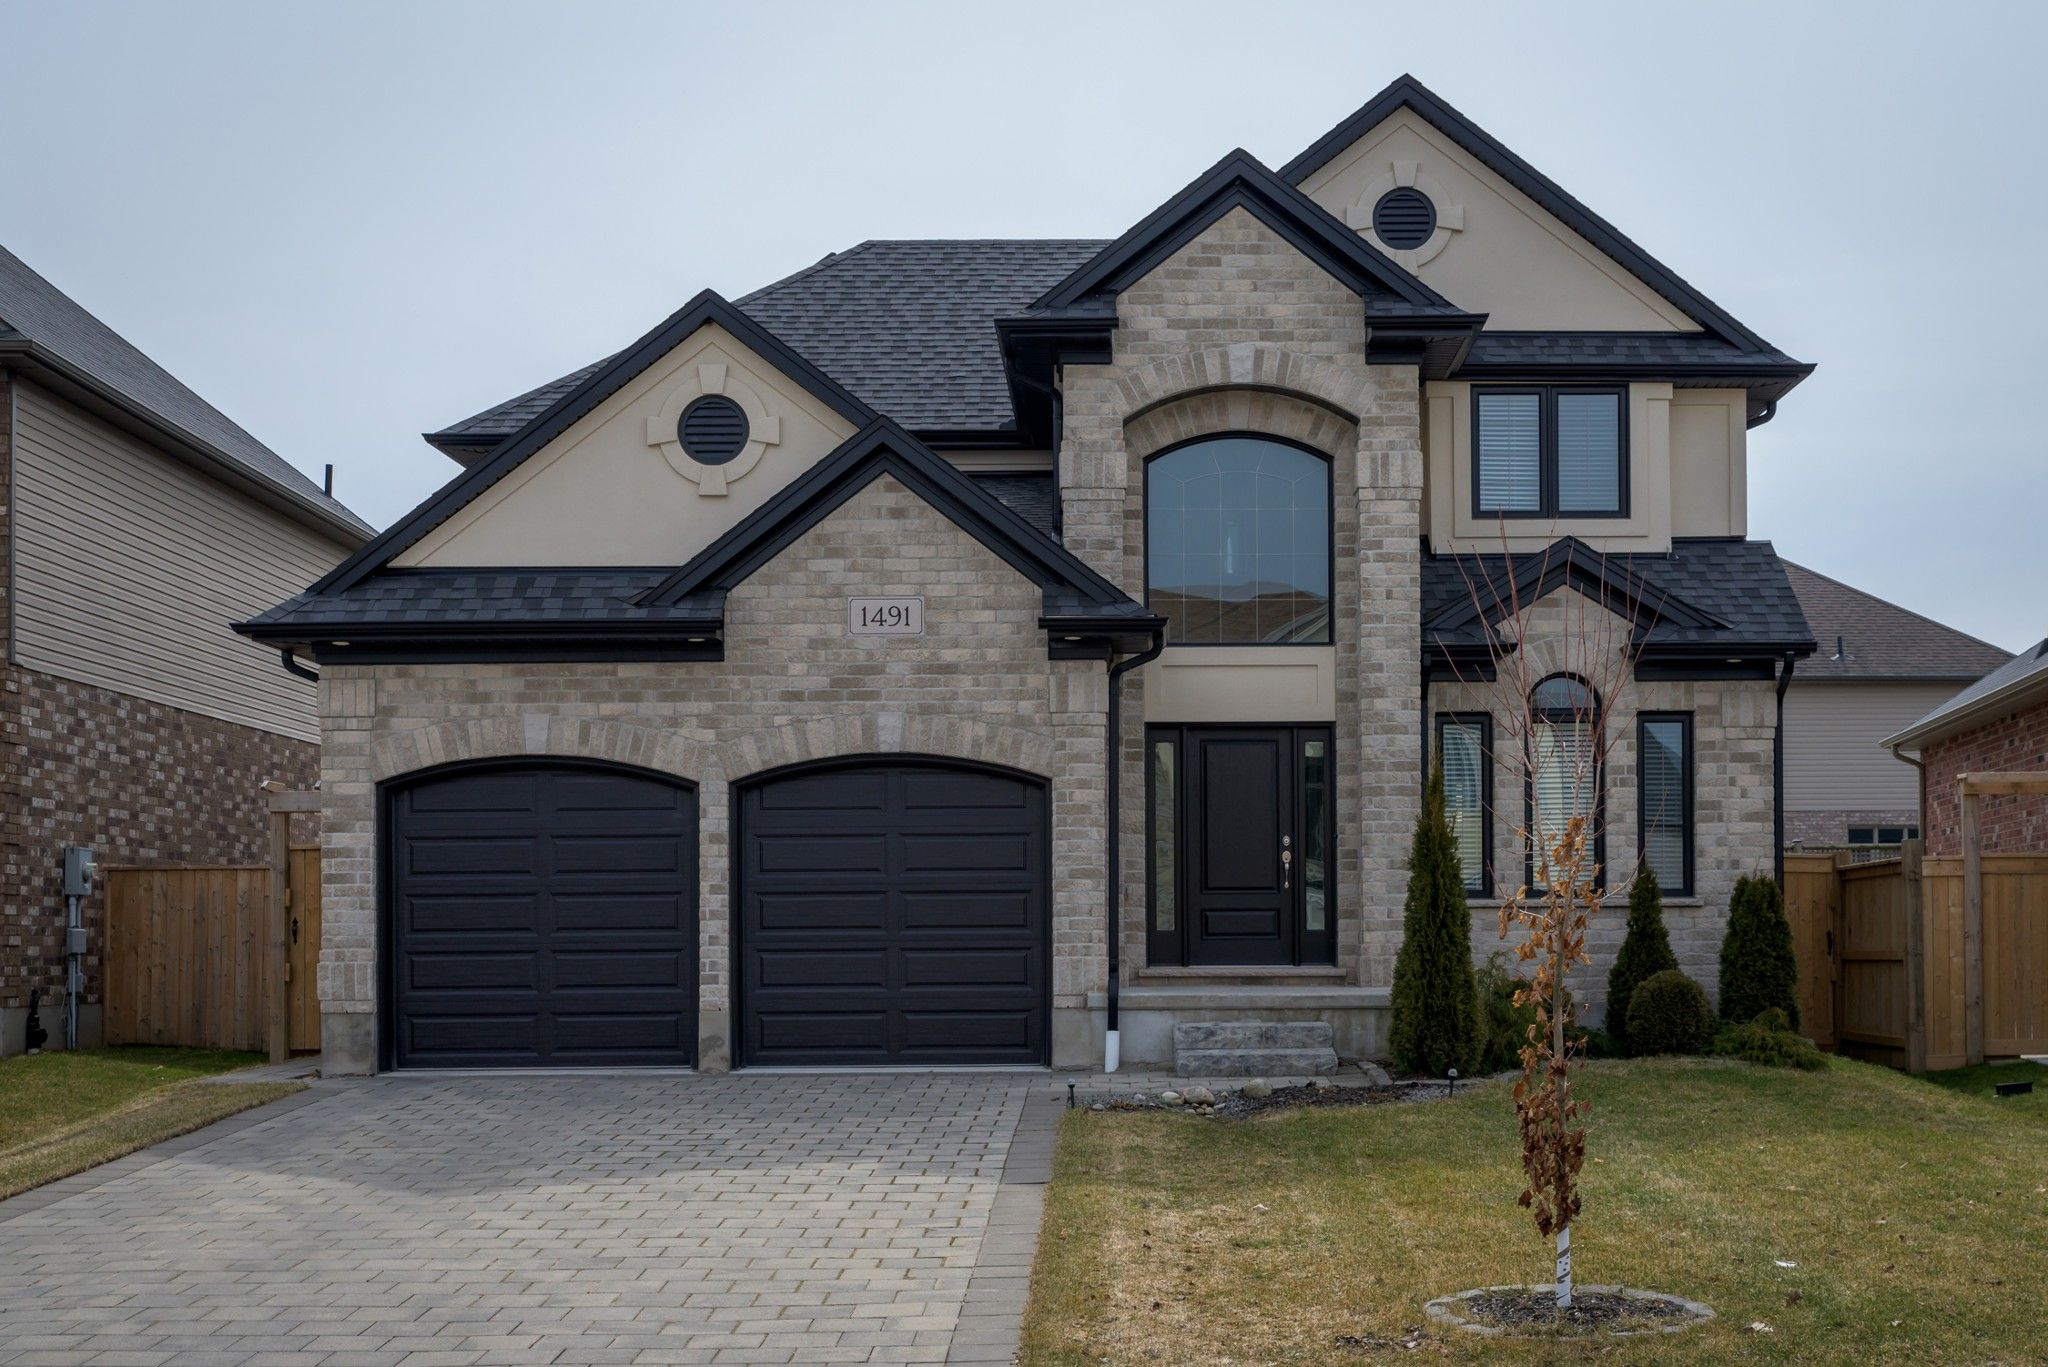 Main Photo: 1491 SANDPIPER Drive in London: Property for sale : MLS®# 251607